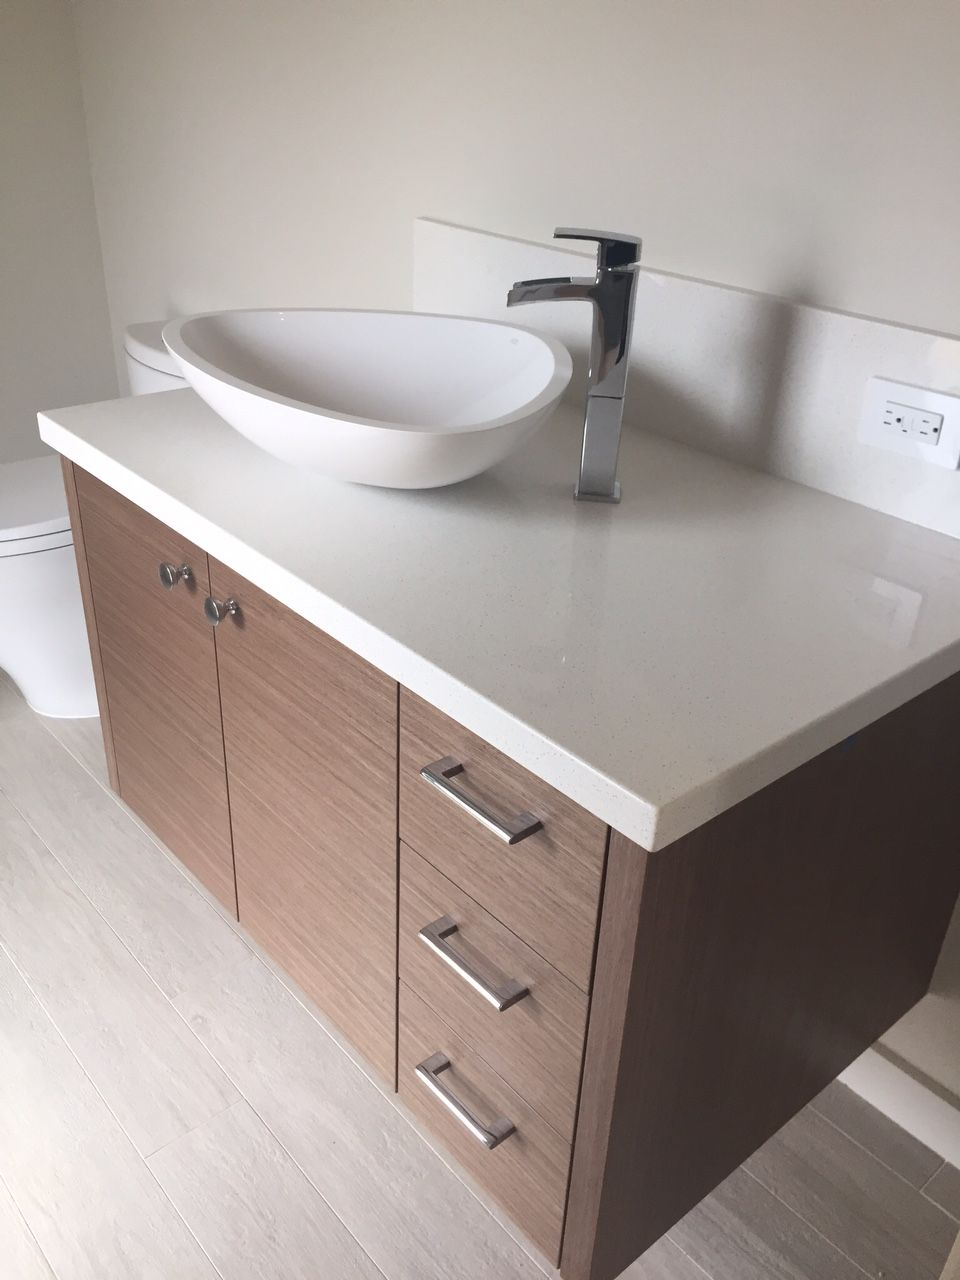 Floating Caesarstone Bath Top By Hawaii Kitchen U0026 Bath. Cabinets By Barker  Kappelle Construction